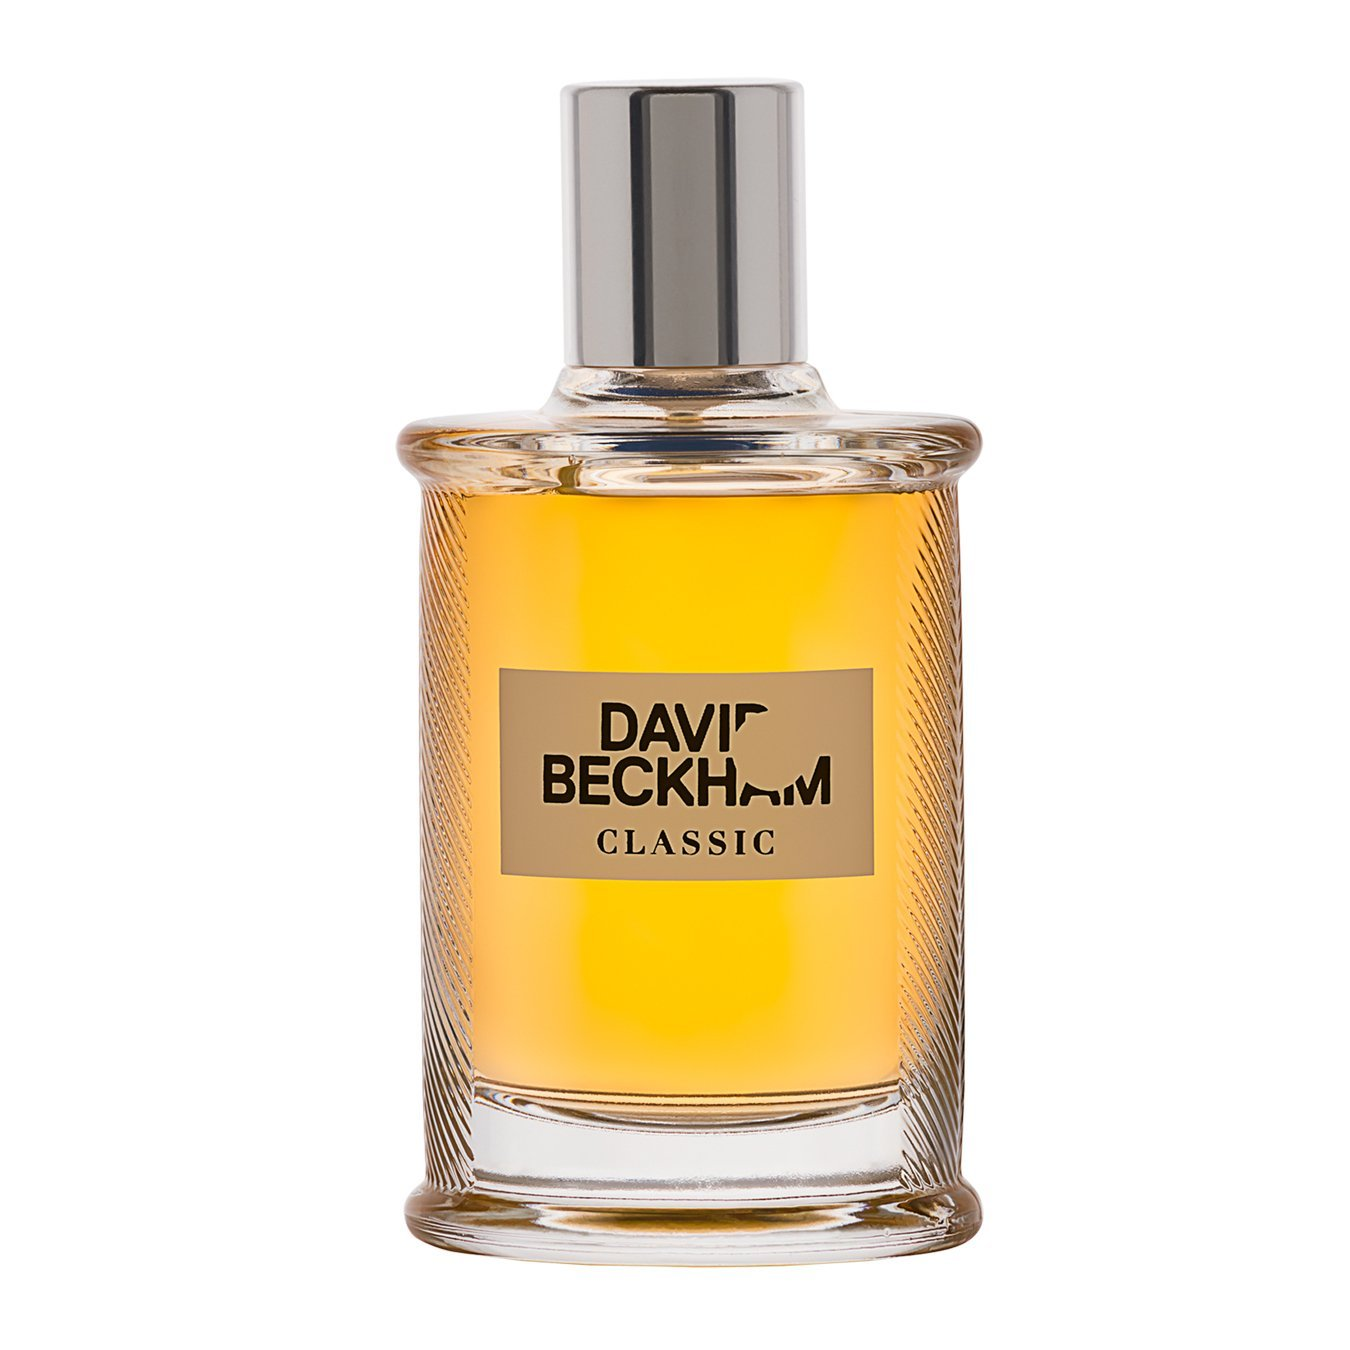 David Beckham Classic Eau de Toilette Perfume for Men, 90ml